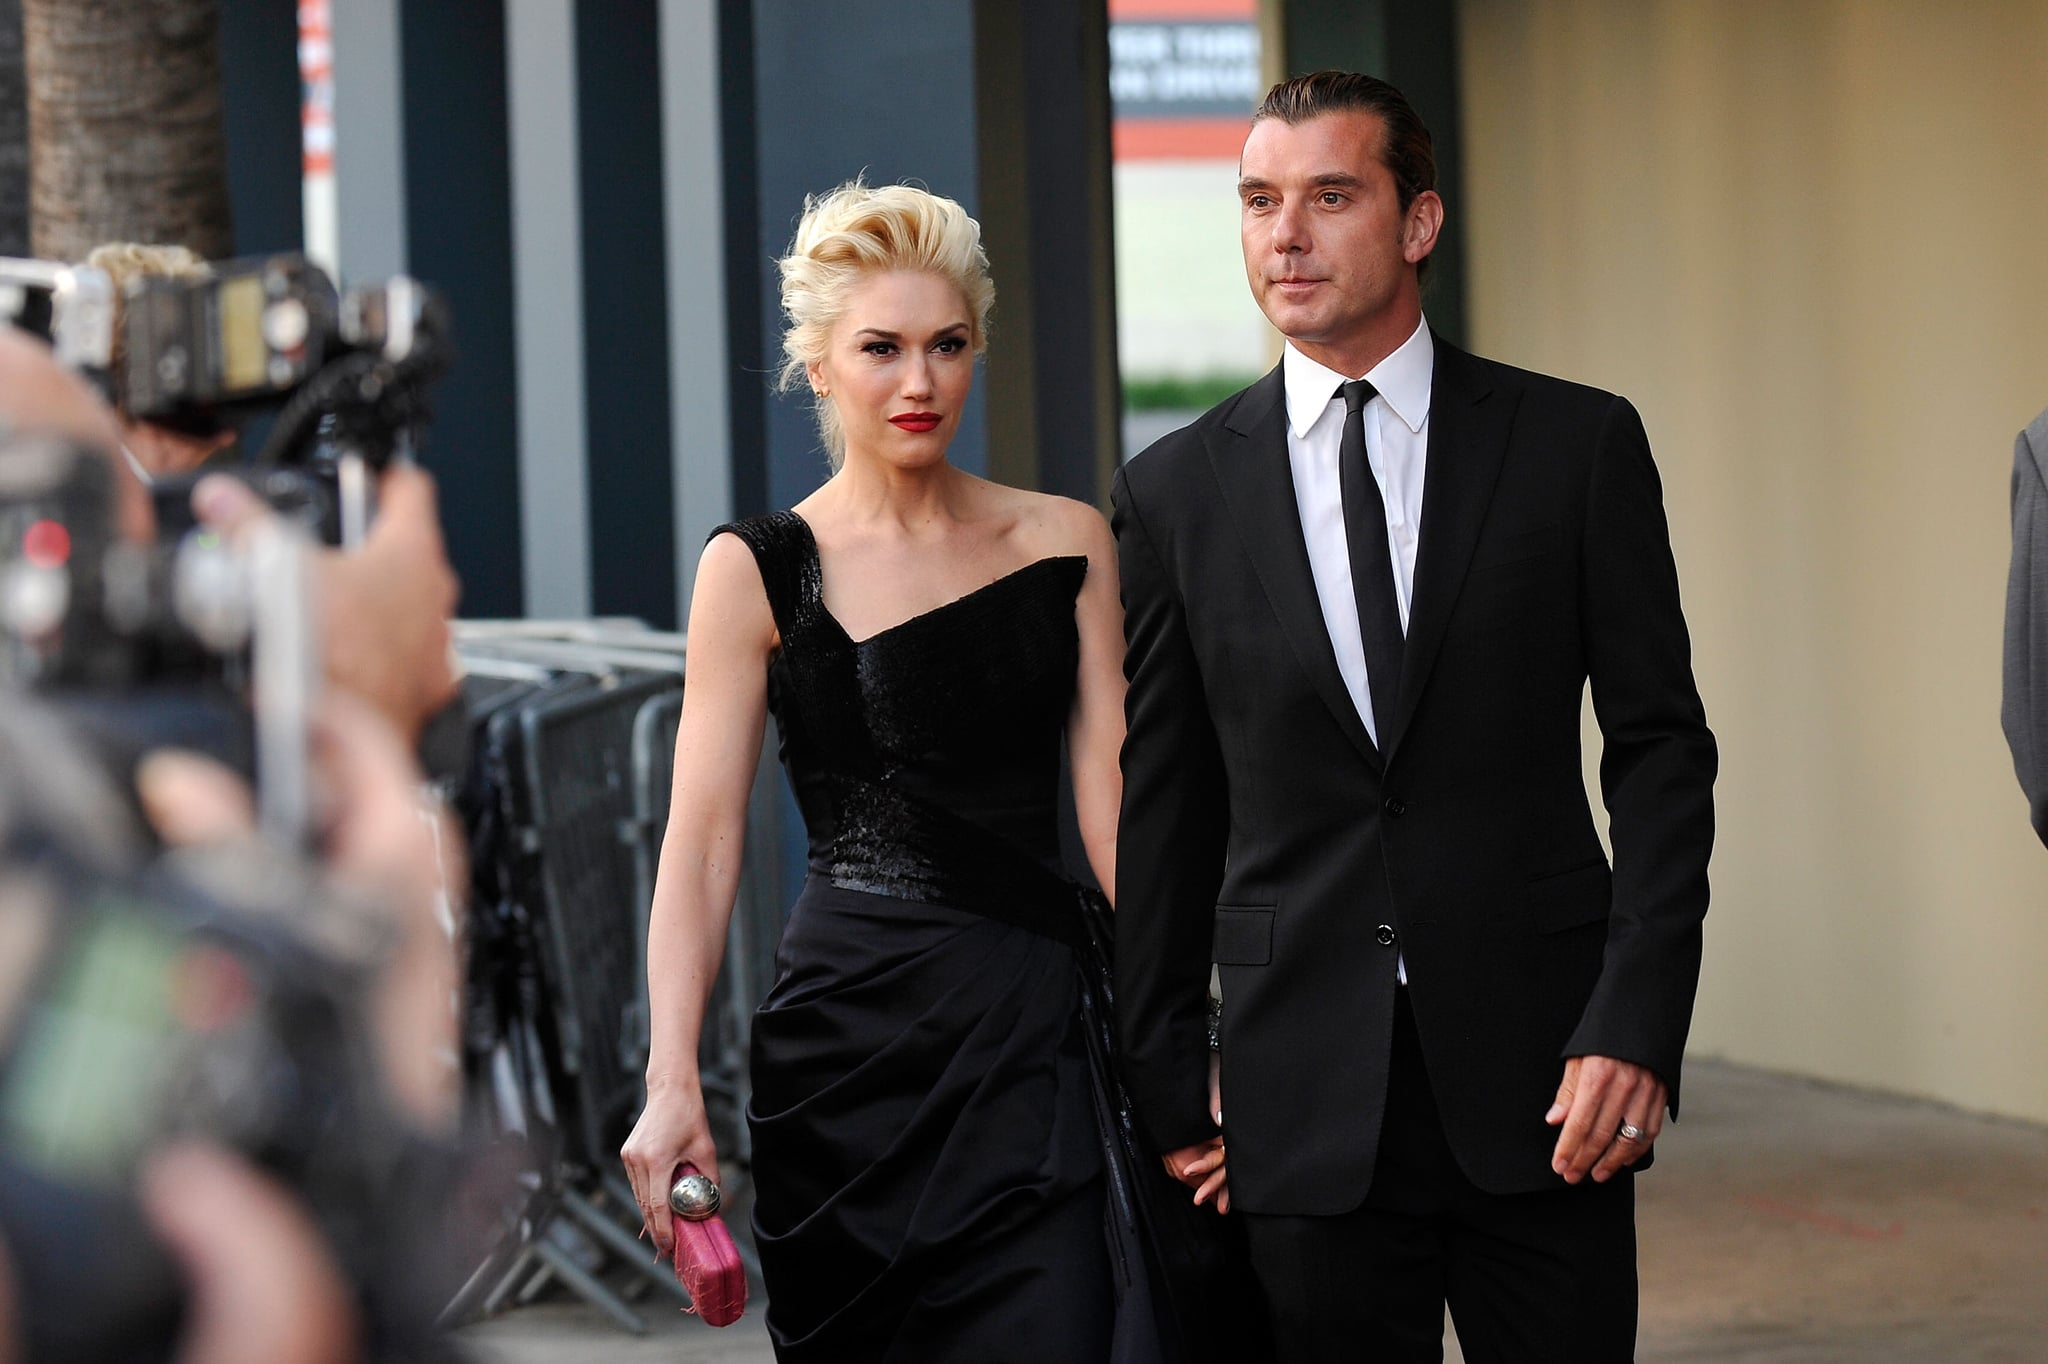 Gavin Rossdale attended the gala with Gwen Stefani.